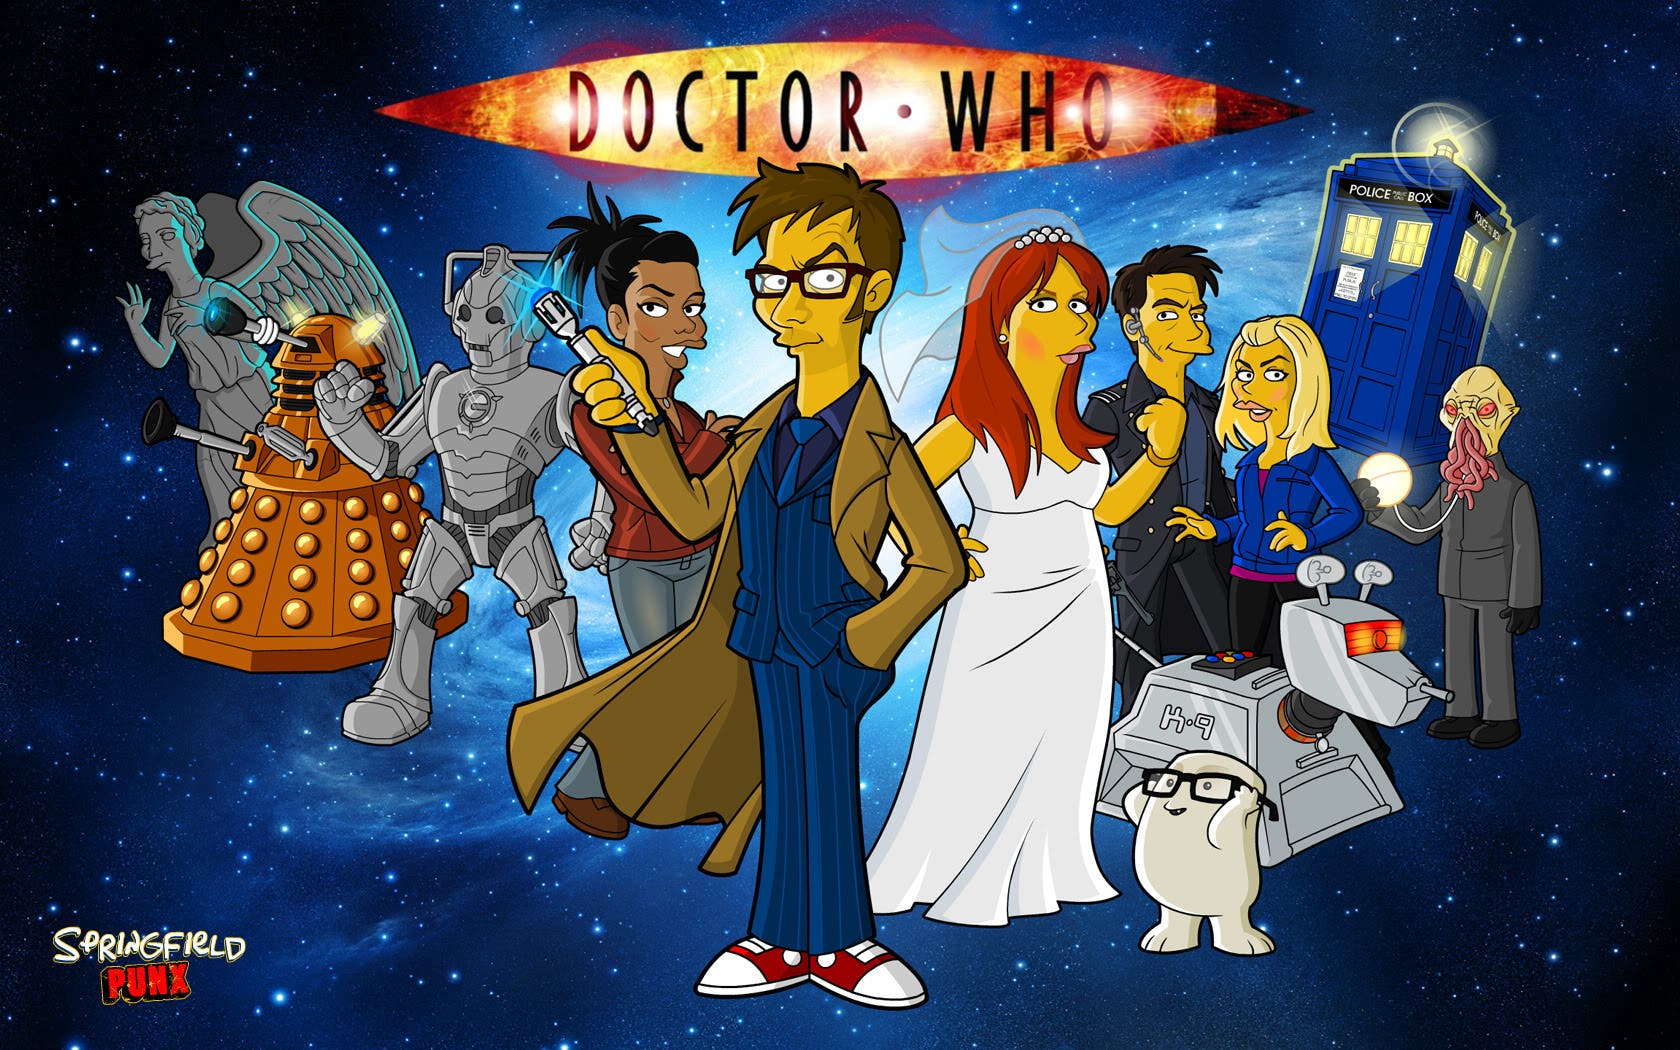 Doctor Who David Tennant Springfield Punx